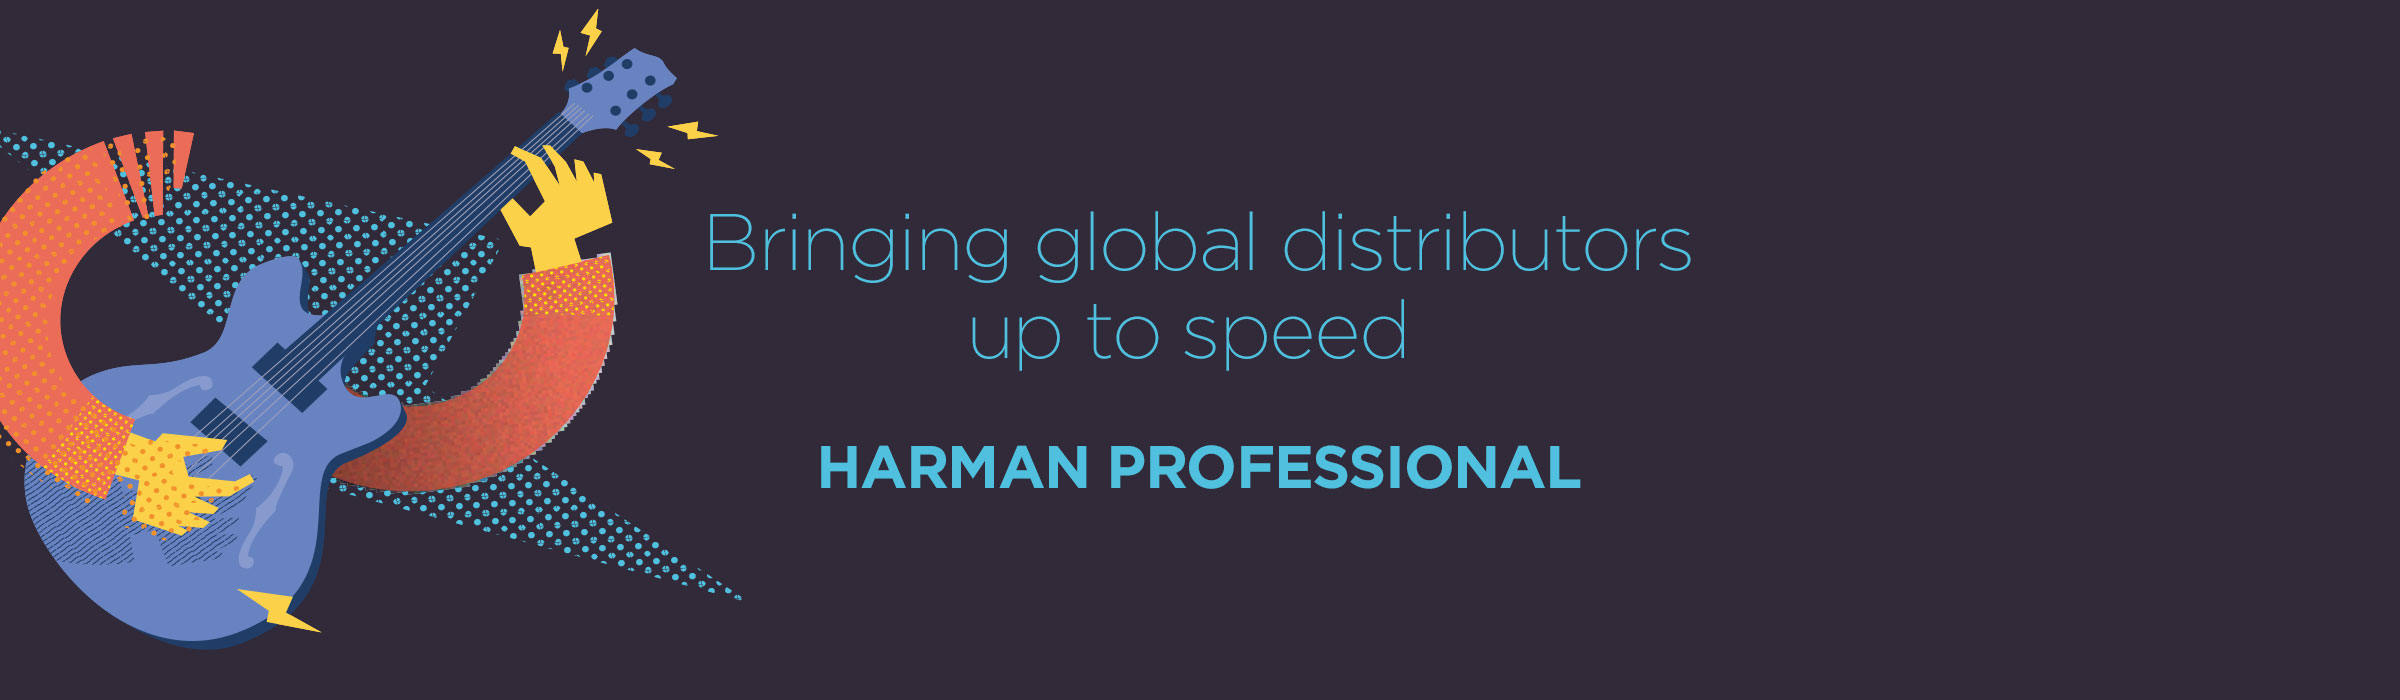 Harman Professional – Keeping global distributors up to speed